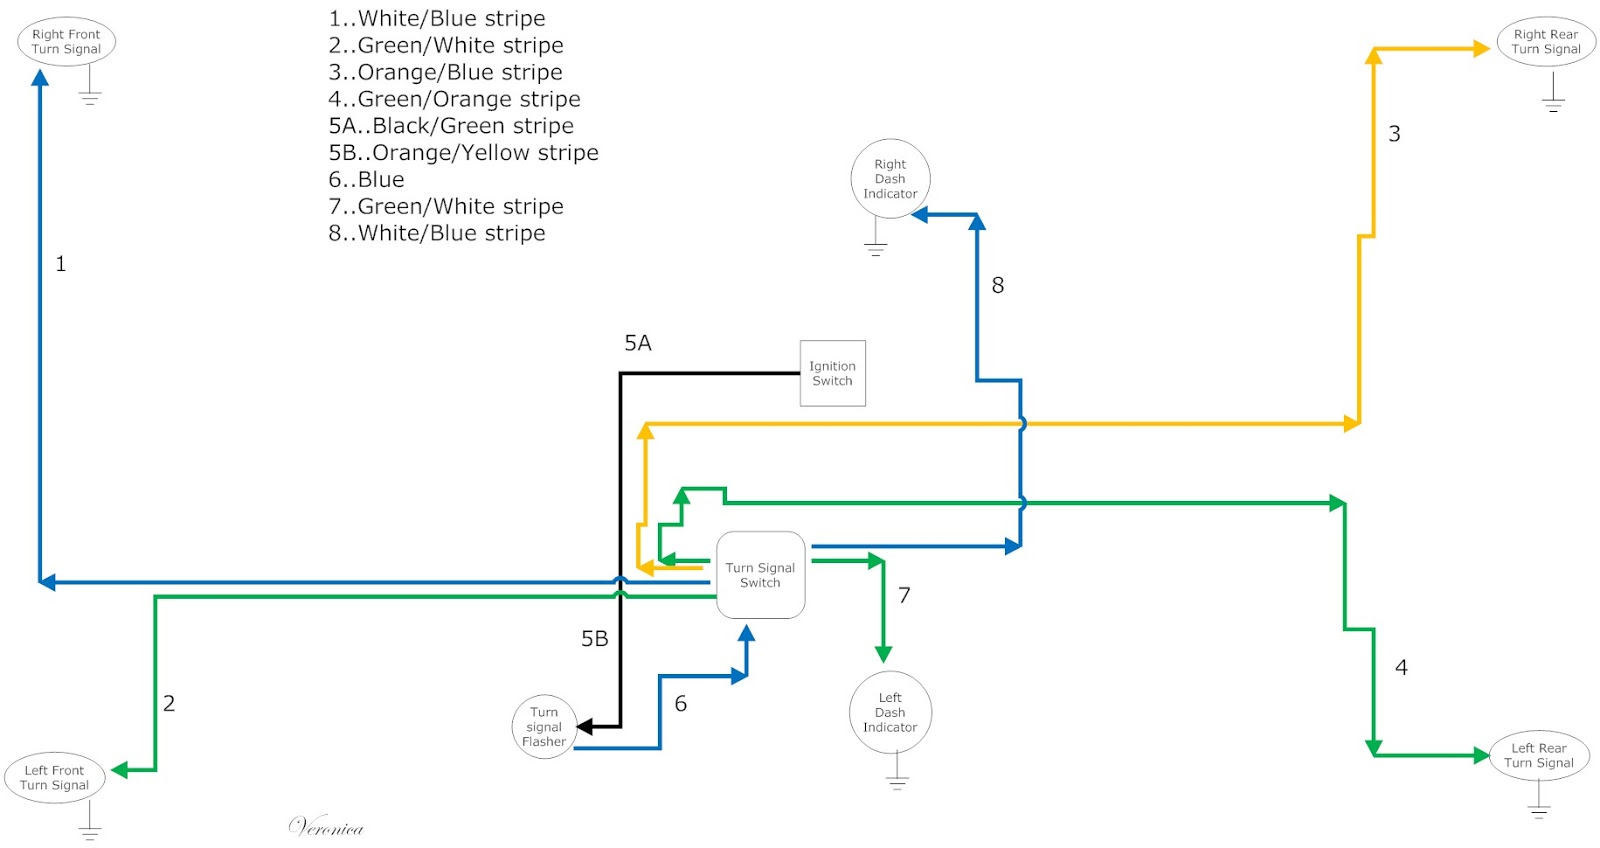 WRG-4671] Ford F150 Turn Signal Wiring Diagram on